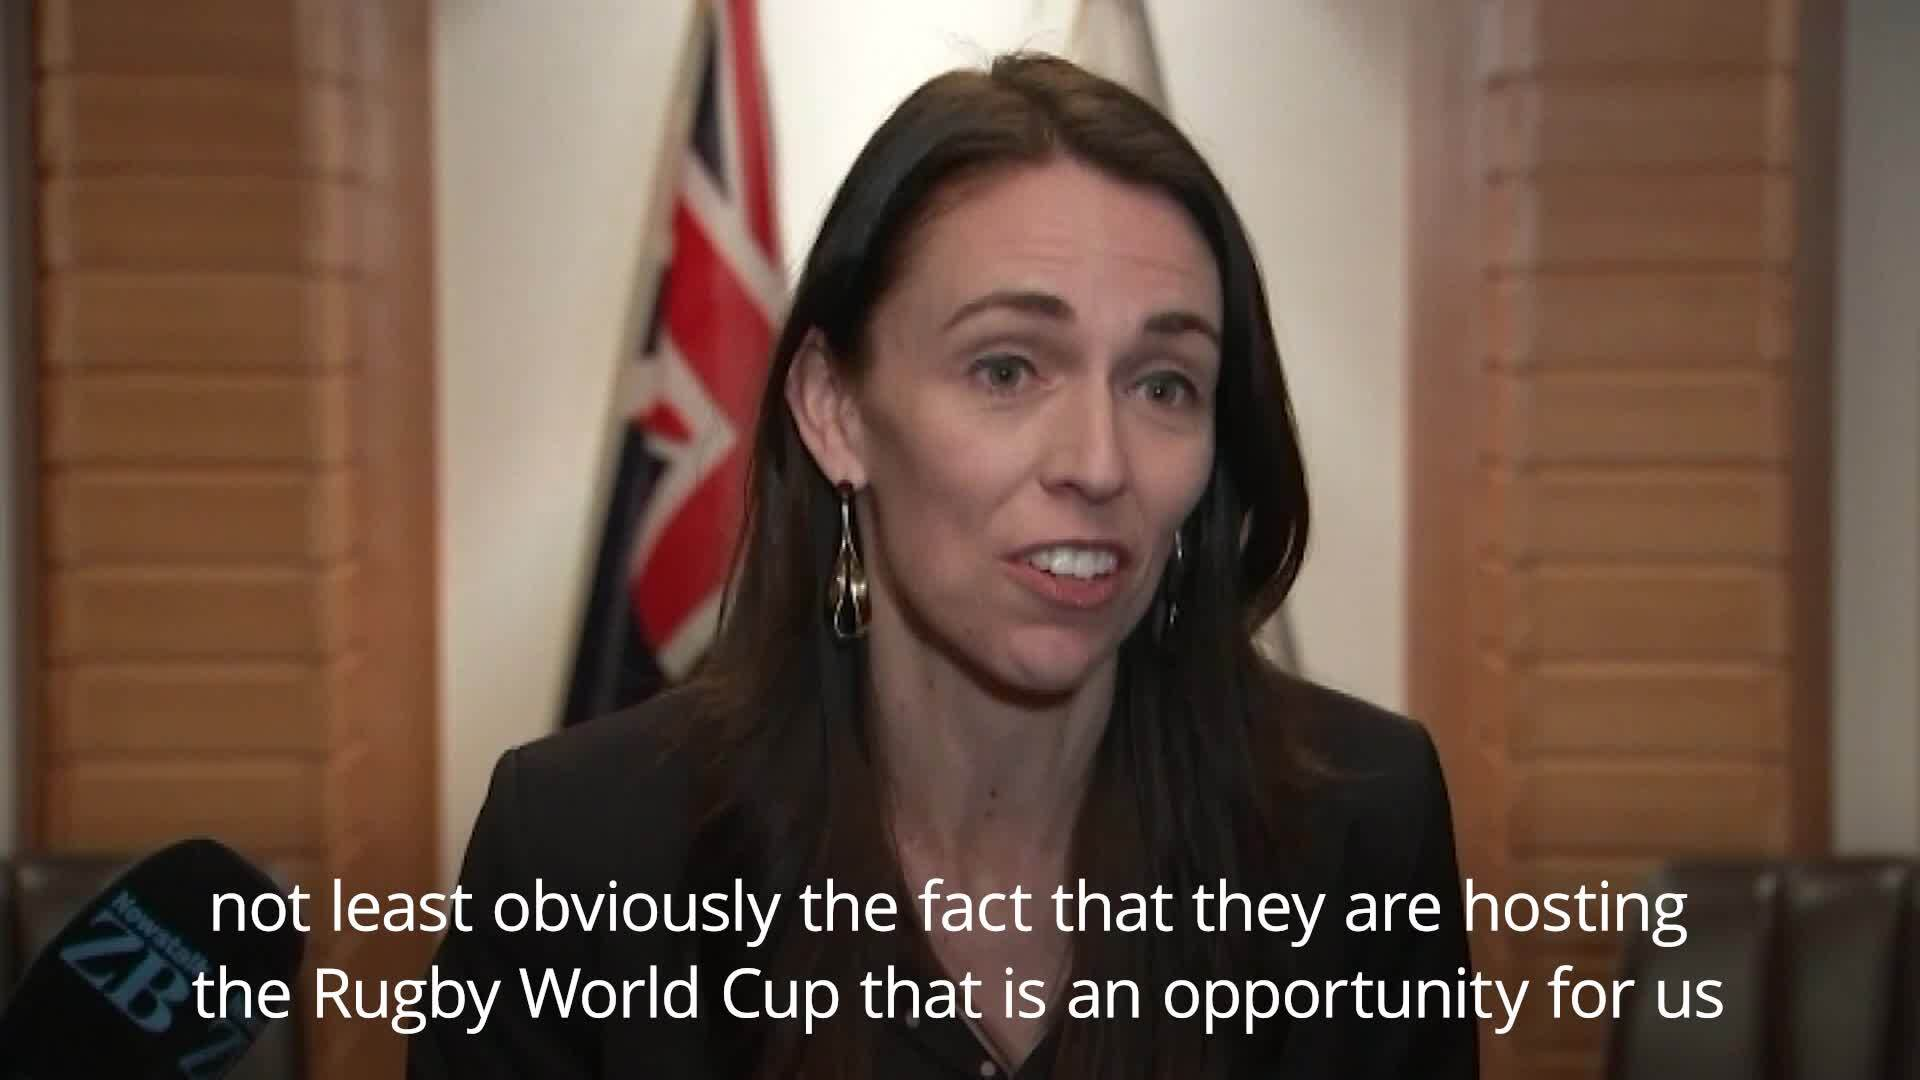 New Zealand PM Jacinda Ardern confuses Japan for China moments after landing in Tokyo